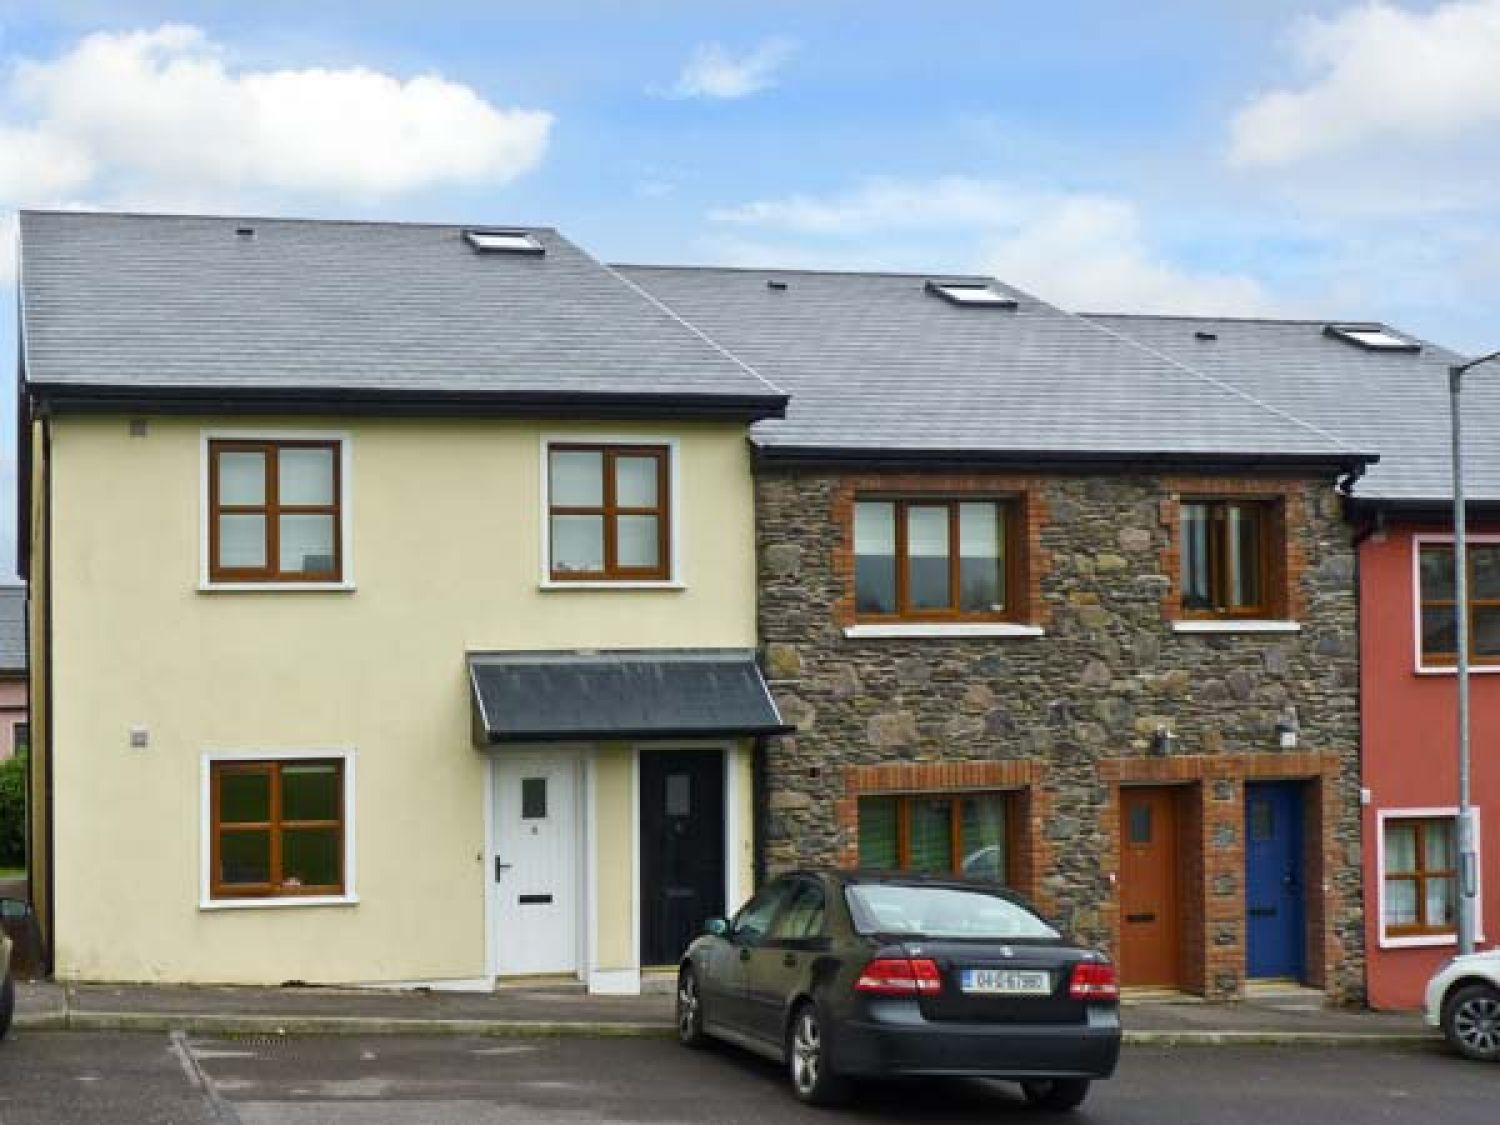 8 Fairfield Close - County Kerry - 10826 - photo 1